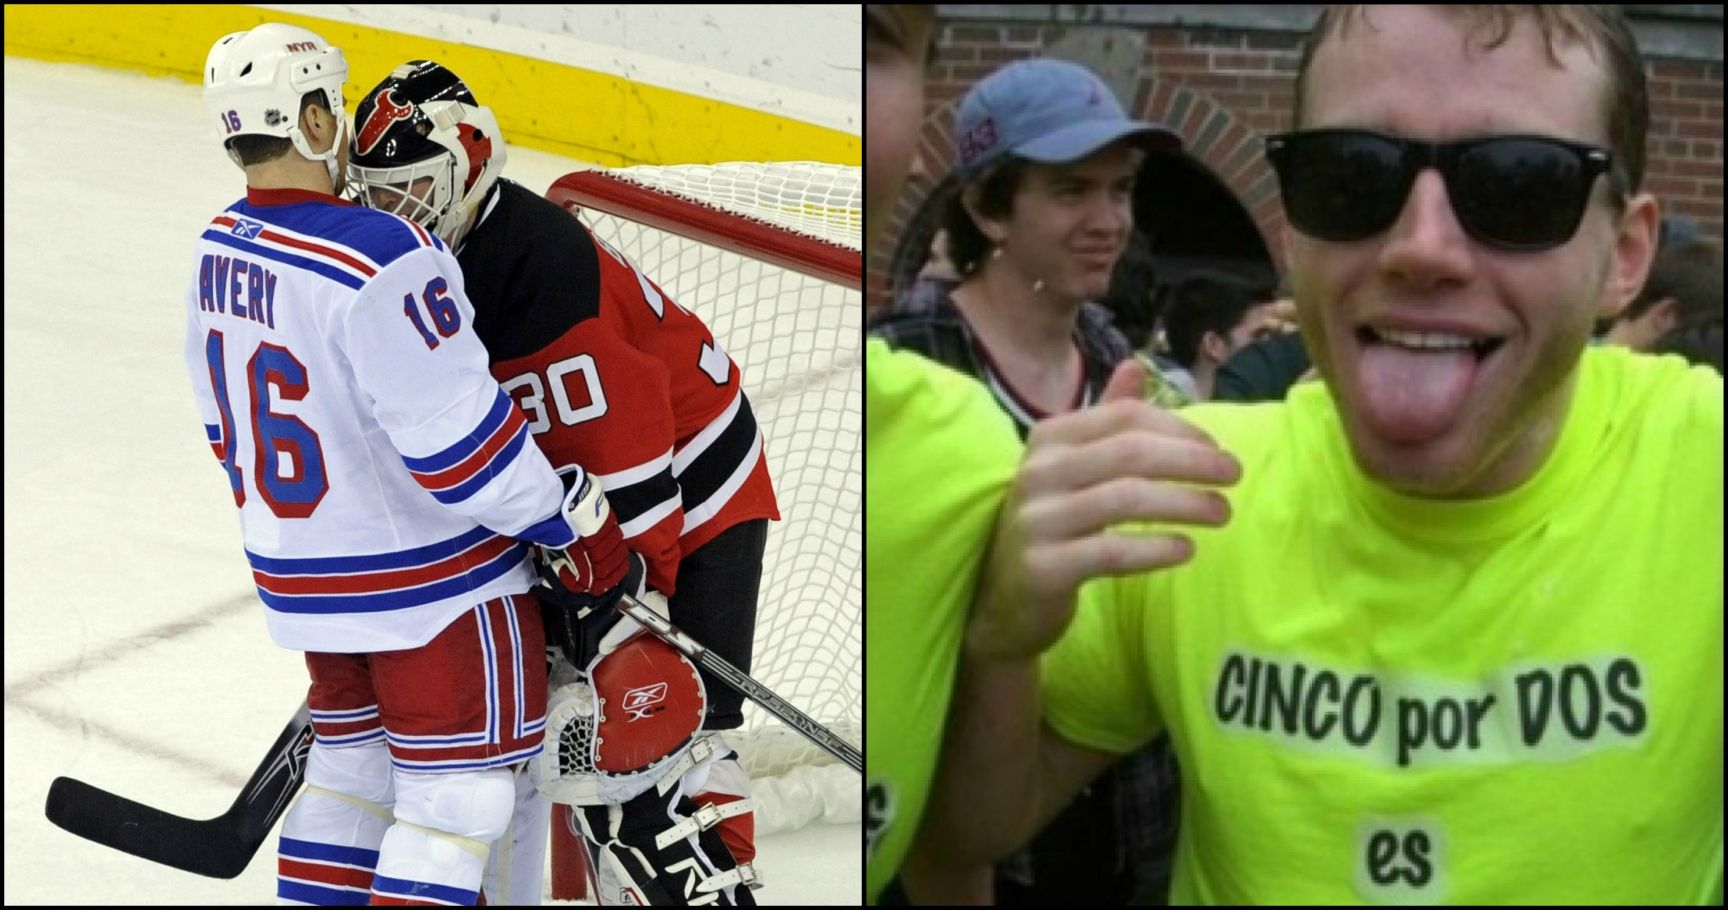 17 Nhl Players Who Are Total Jerks Off The Ice Therichest